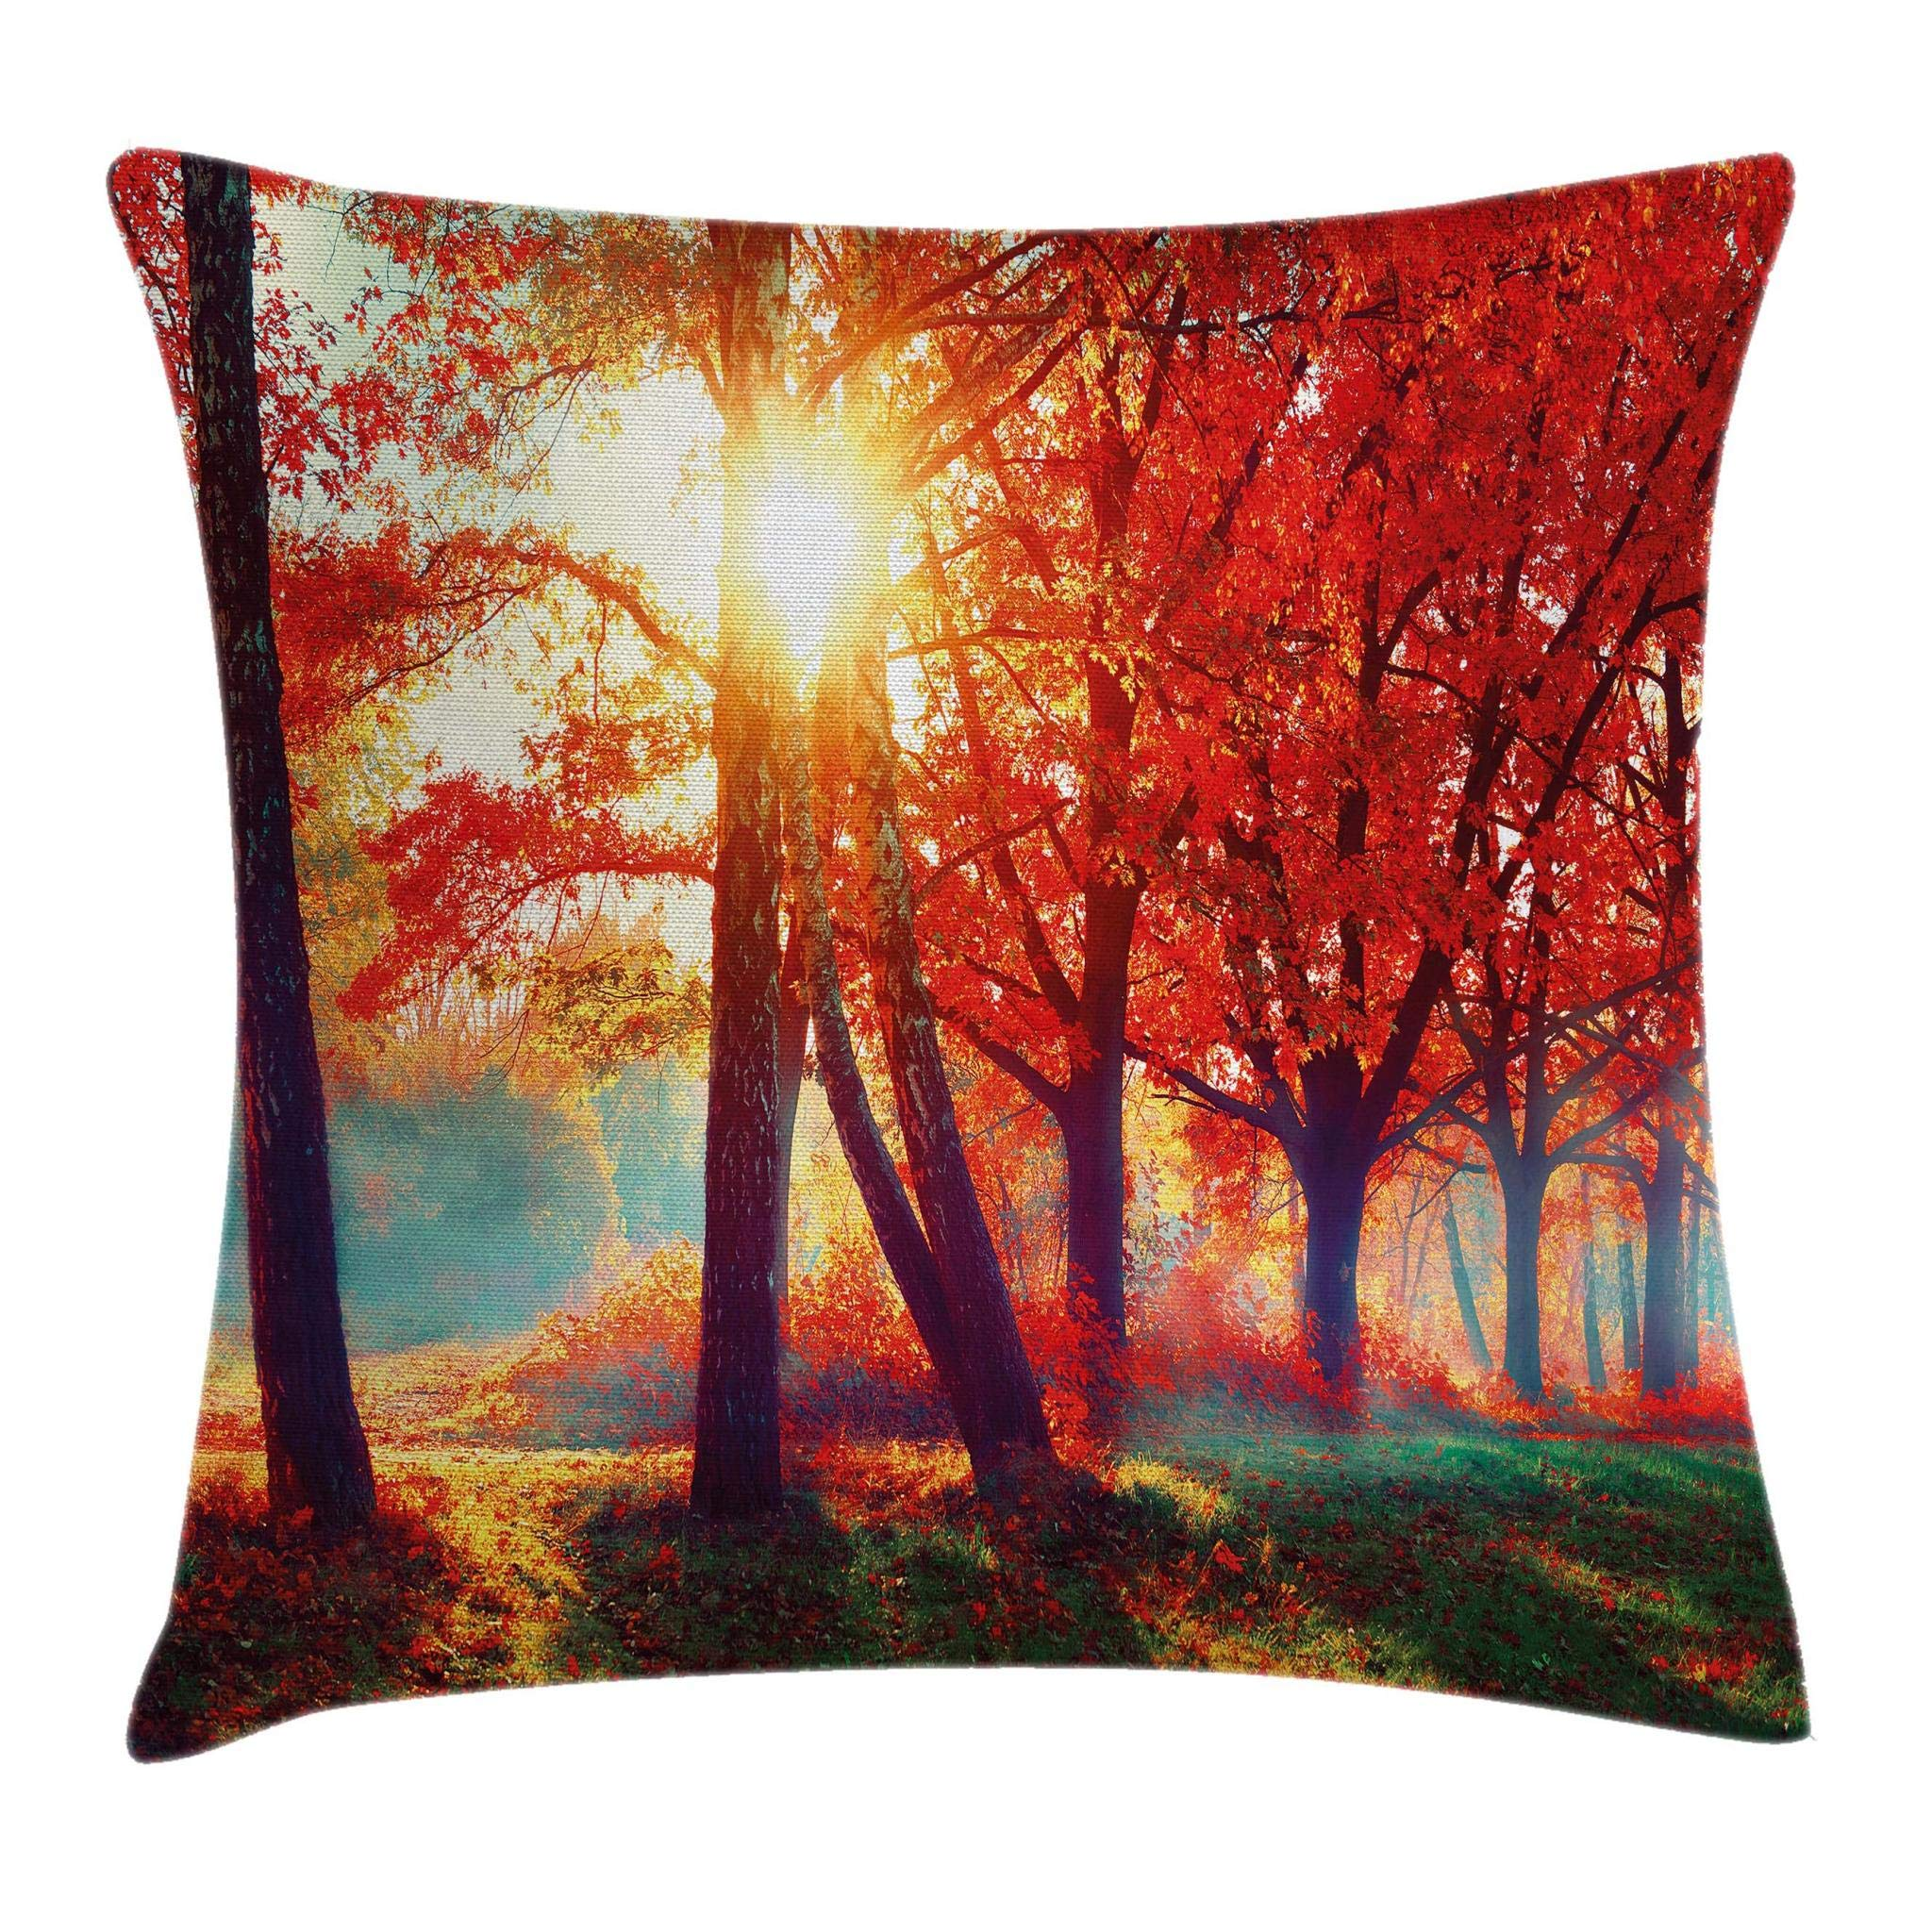 Ambesonne Tree Throw Pillow Cushion Cover, Autumnal Foggy Park Fall Nature Scenic Scenery Maple Trees Sunbeams Woods, Decorative Square Accent Pillow Case, 16 X 16 Inches, Orange Yellow Teal by Ambesonne (Image #1)